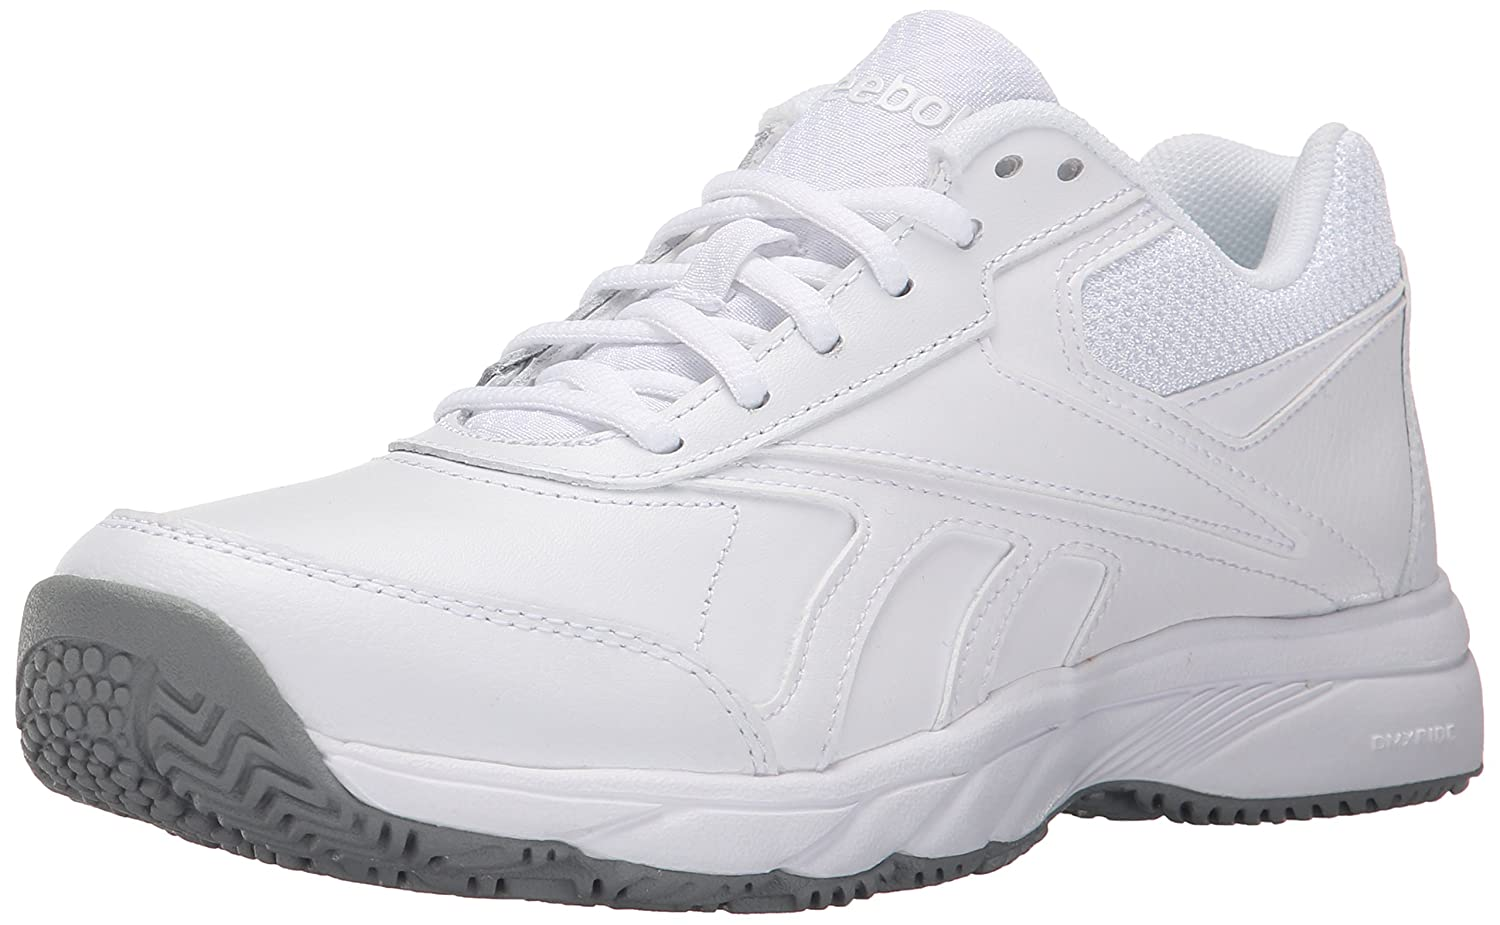 Reebok Women's Work 'N Cushion 2.0 Walking Shoe B010V6M1WW 9.5 B(M) US|White/Flat Grey